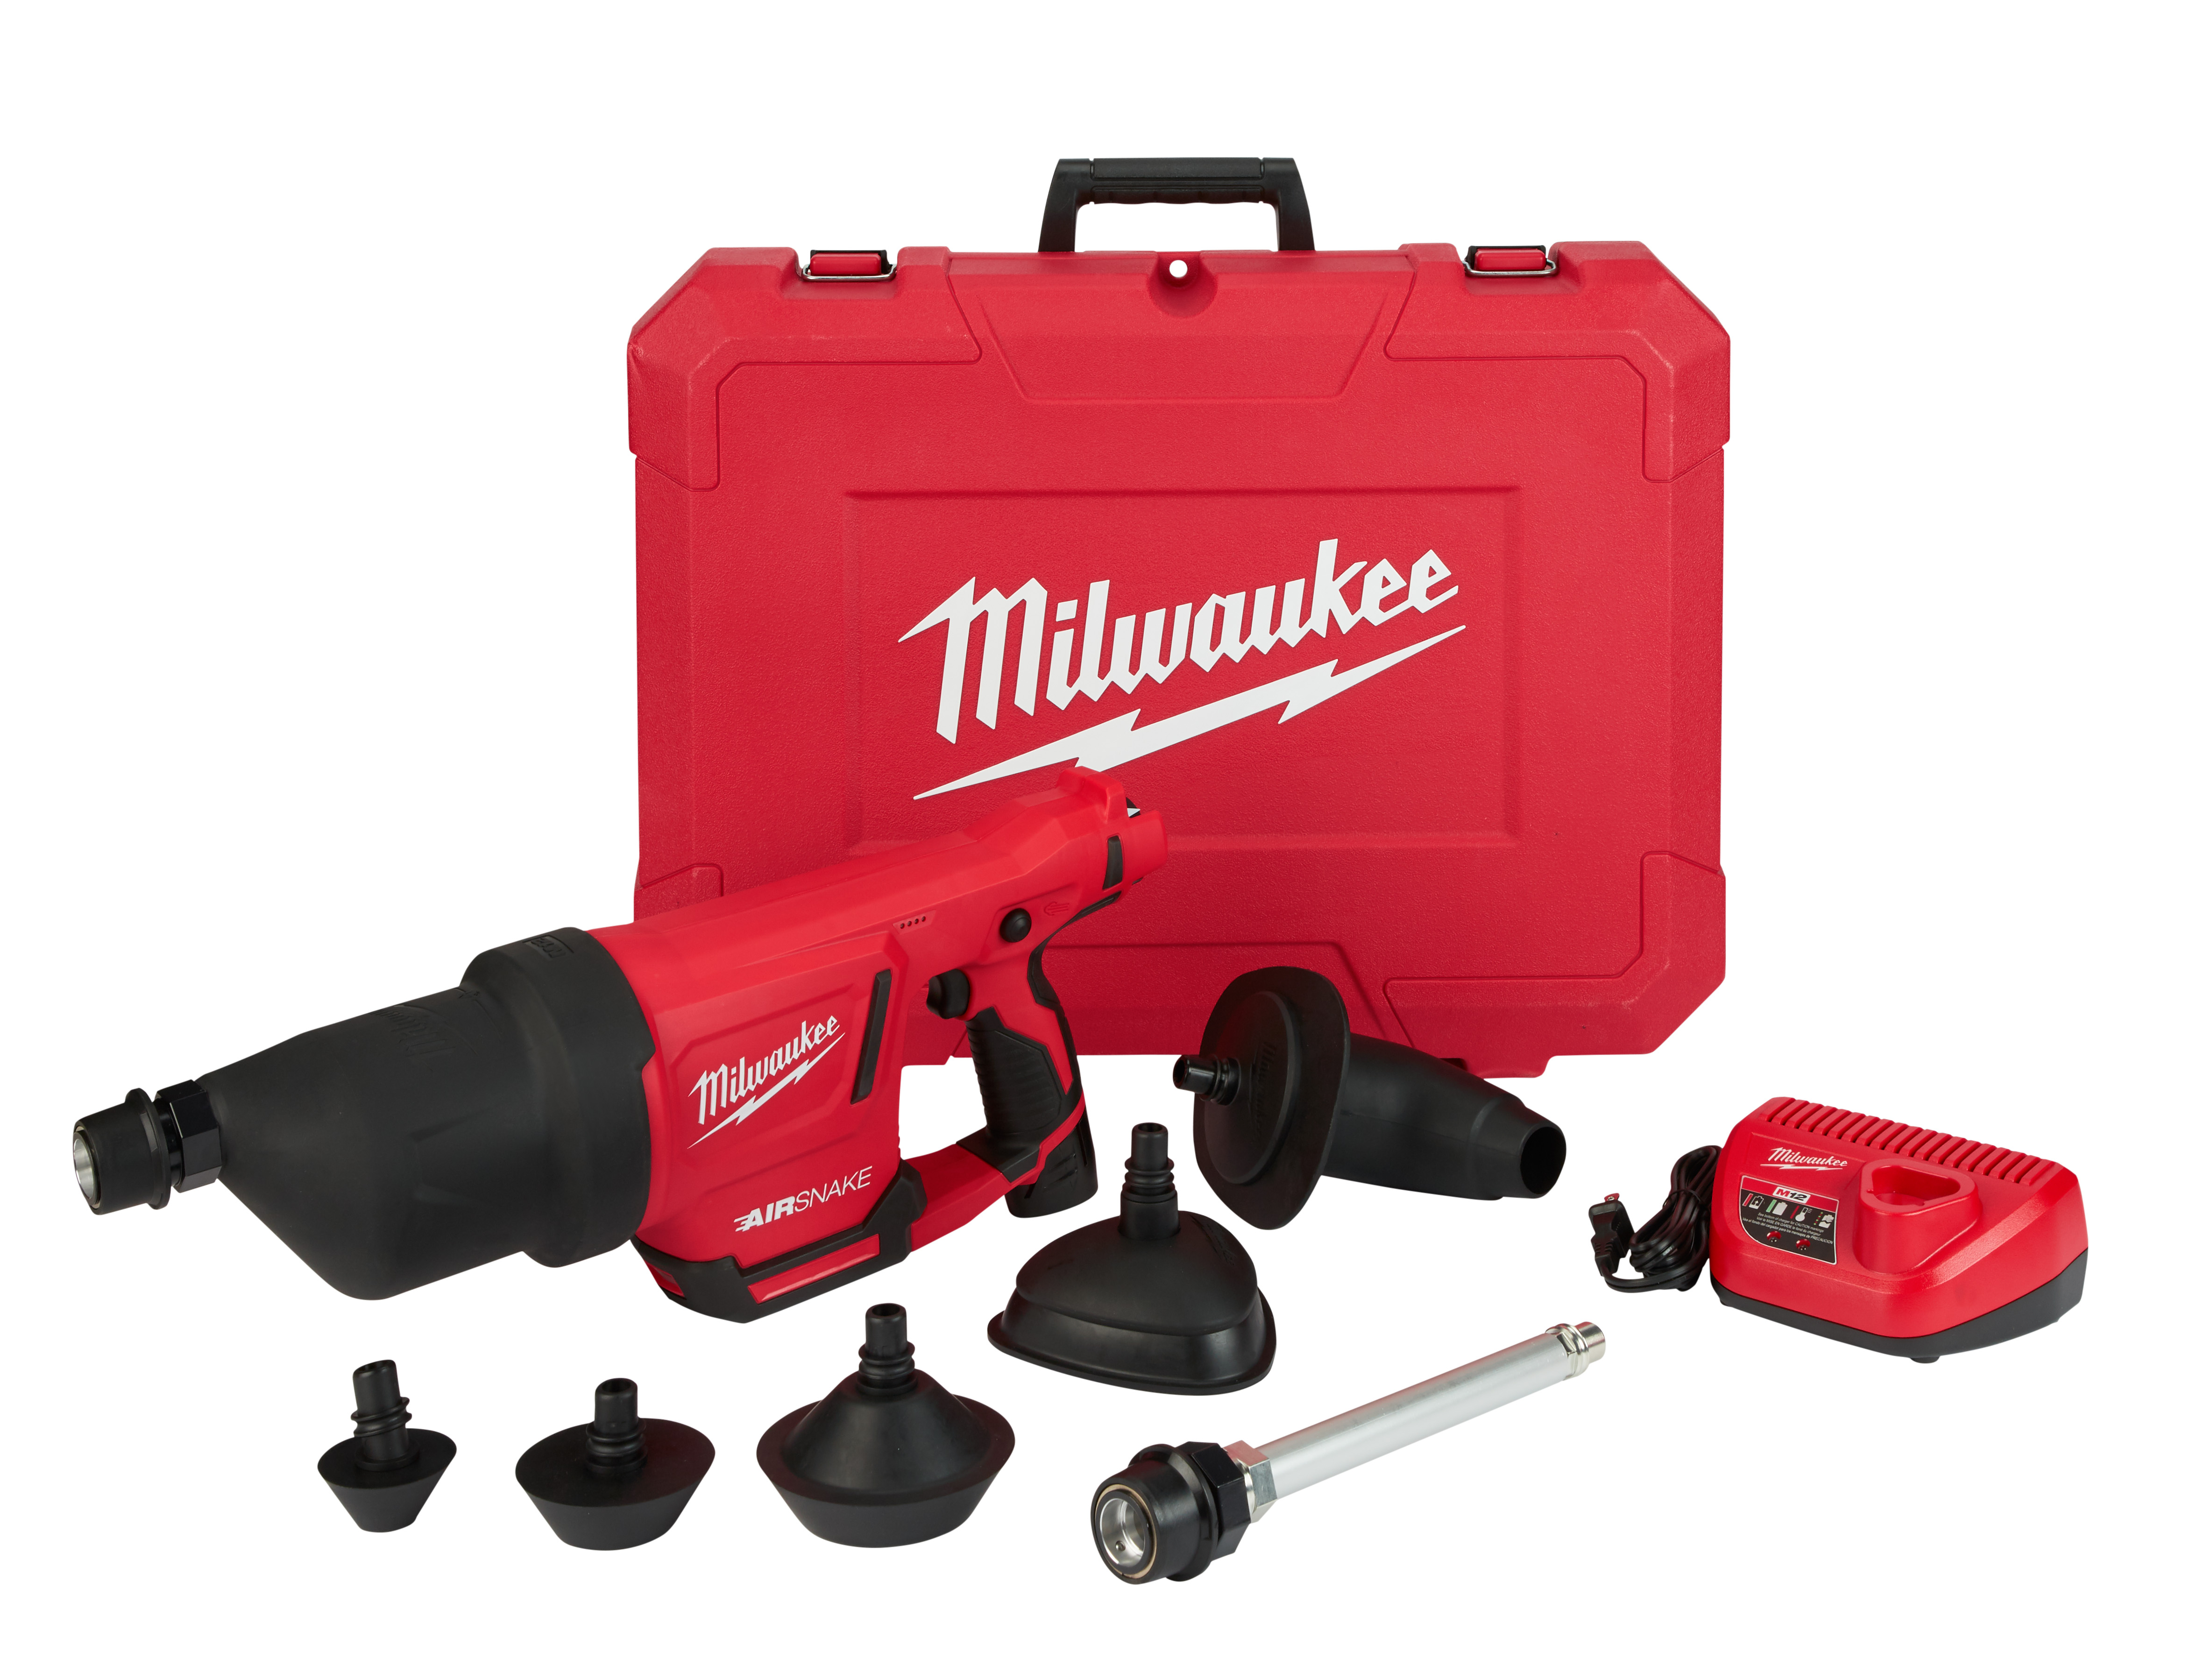 Milwaukee® M12™ AIRSNAKE™ 2572B-21 Cordless Drain Cleaning Air Gun Kit, 1 to 4 in Drain Line, 35 ft Max Run, 12 VDC, Plastic Housing